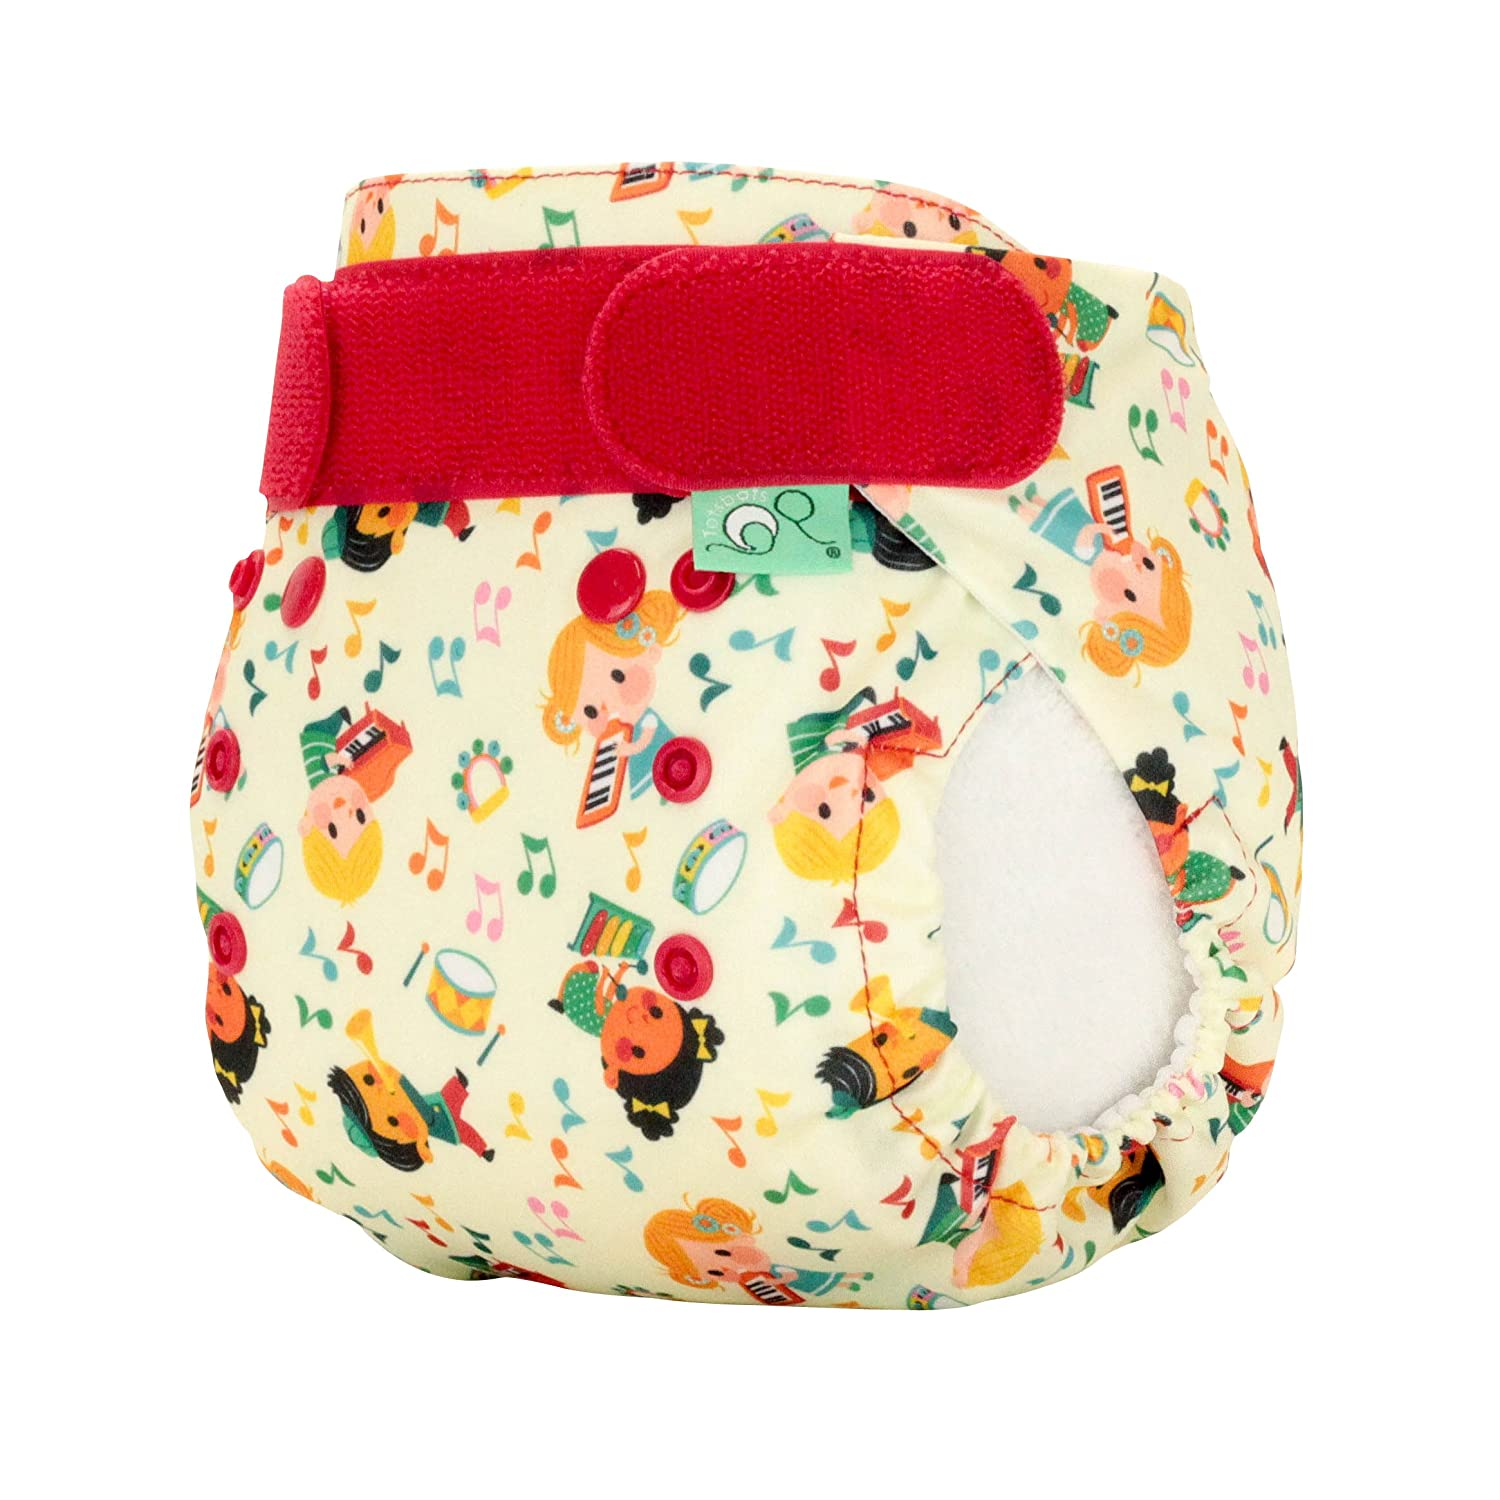 TotsBots PeeNut Waterproof Wrap Size 2 in a Parumpapum Design for use with the Bamboozle Nappies Tots Bots Limited 5060510760653